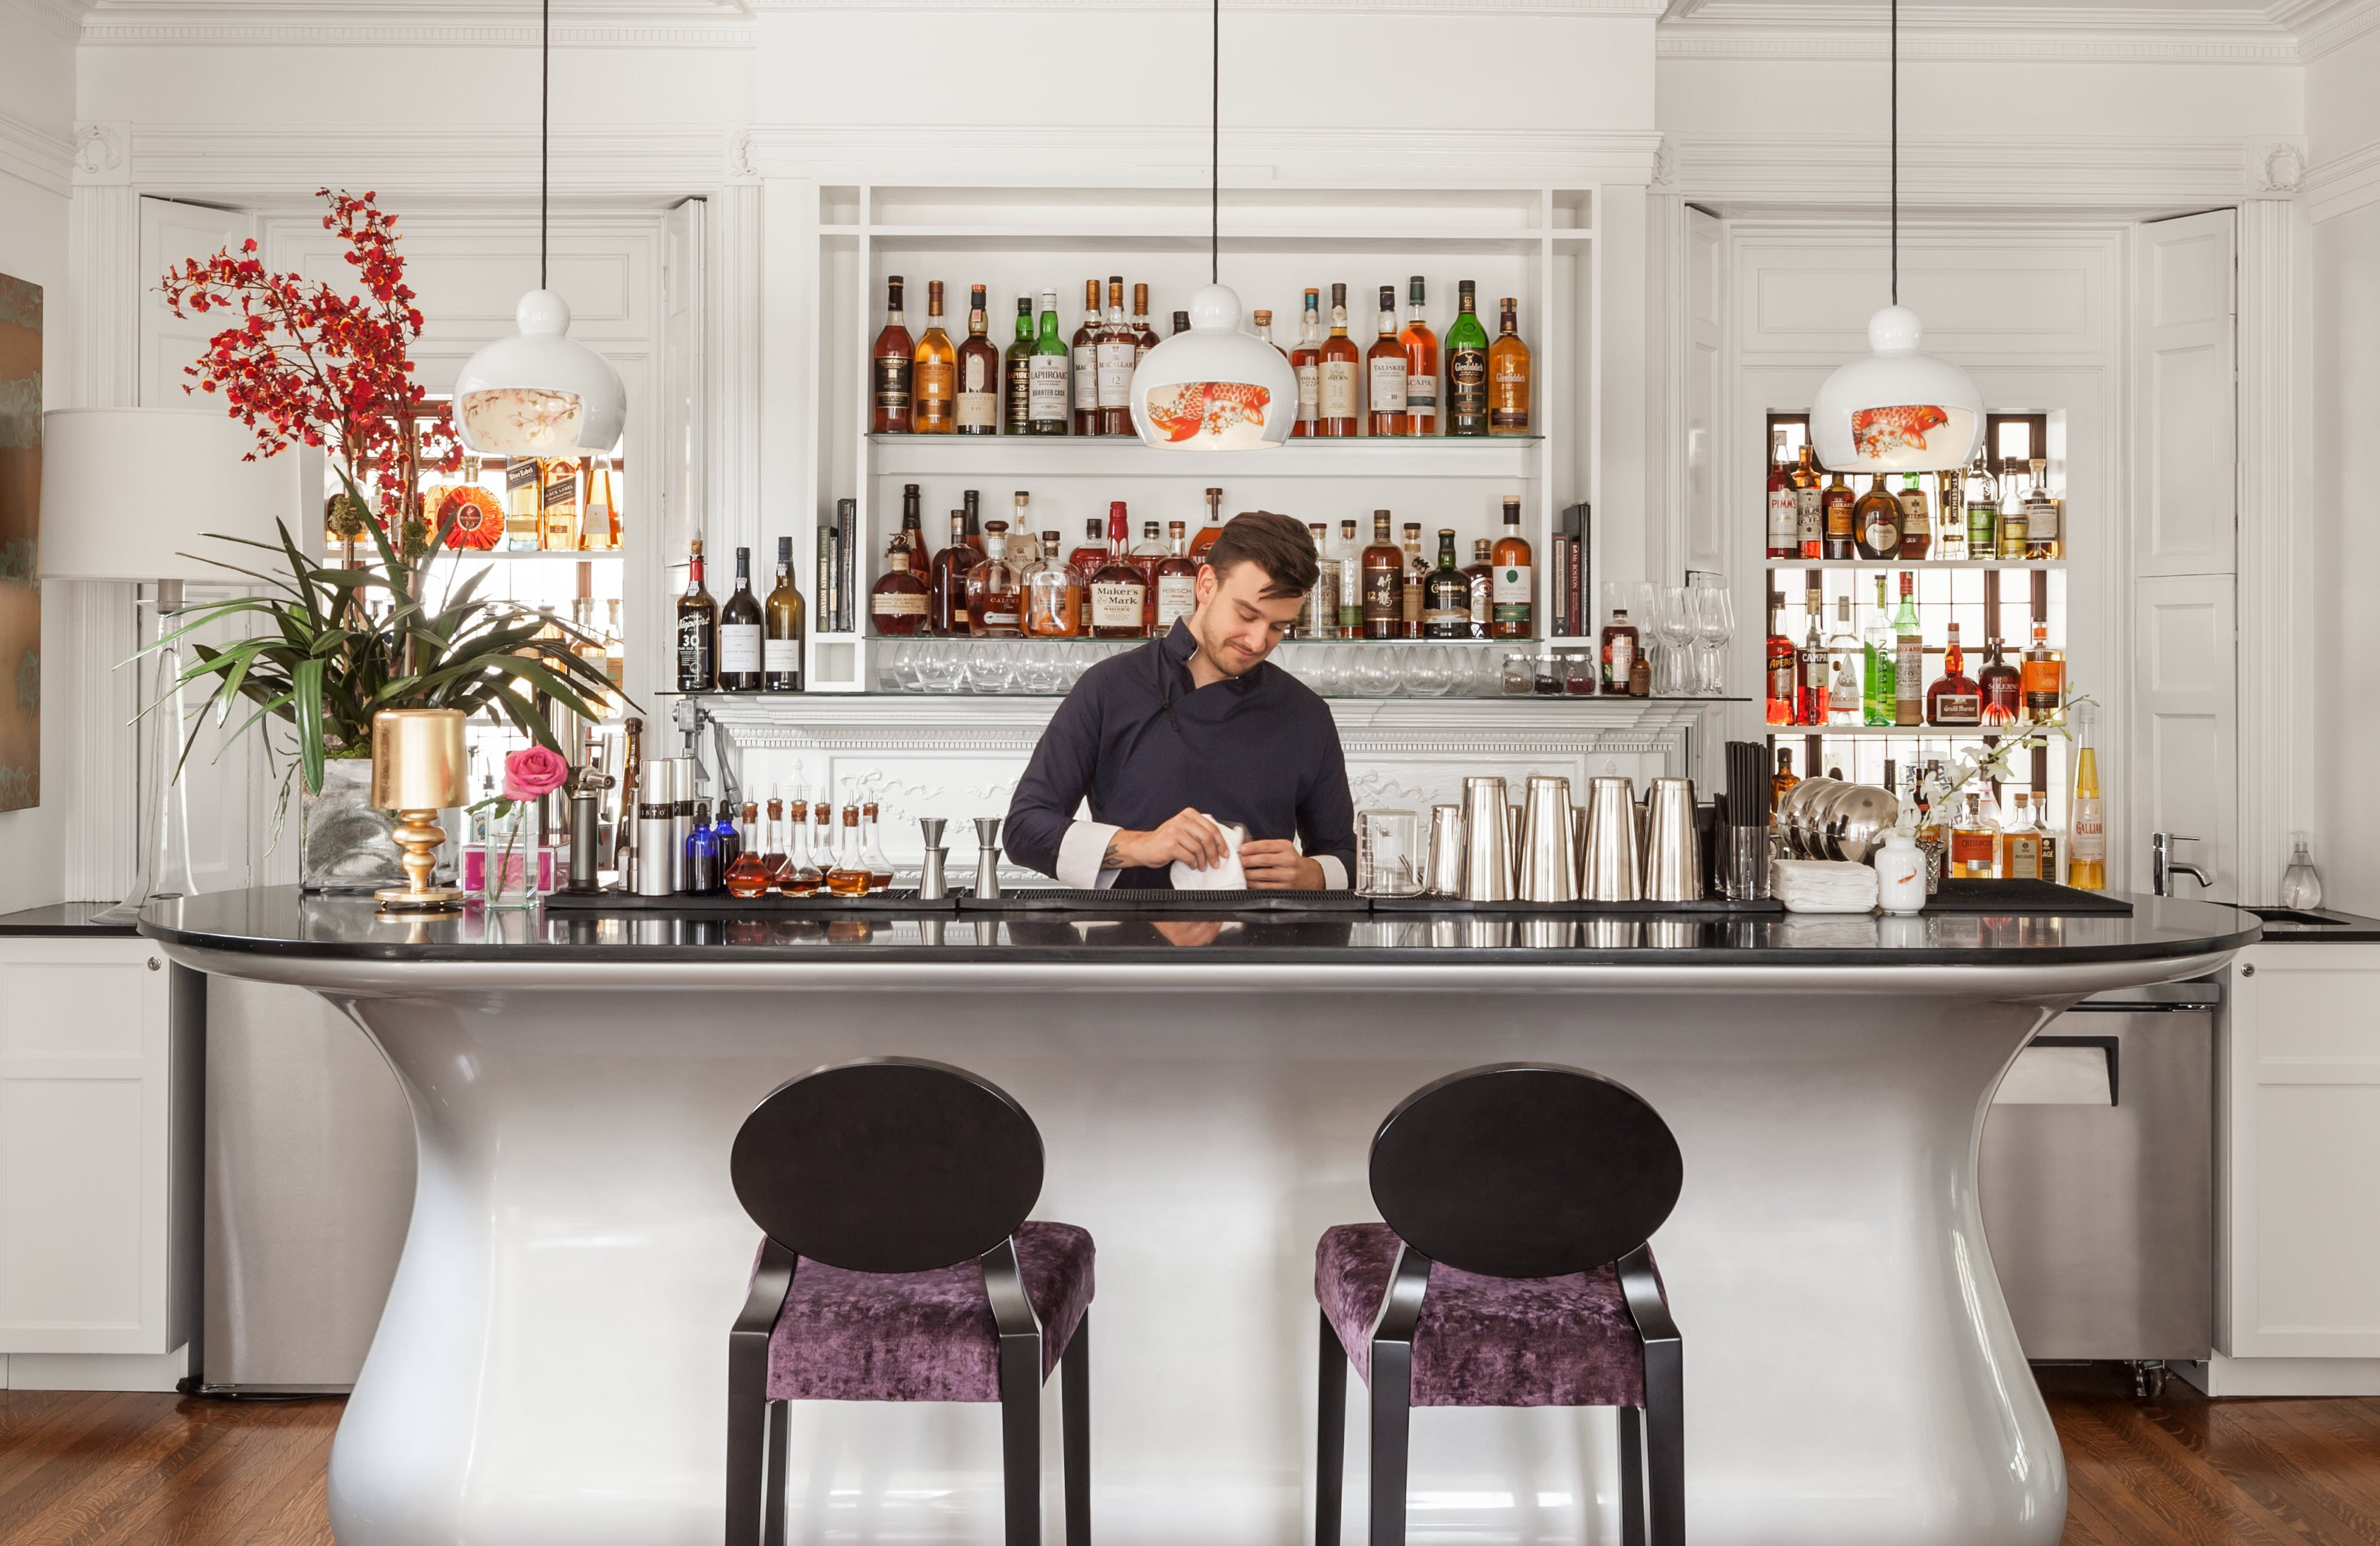 Mixologist Trevin Hutchins will do some magic with your cocktails. Try our signature Wayang or Jakarta cocktails